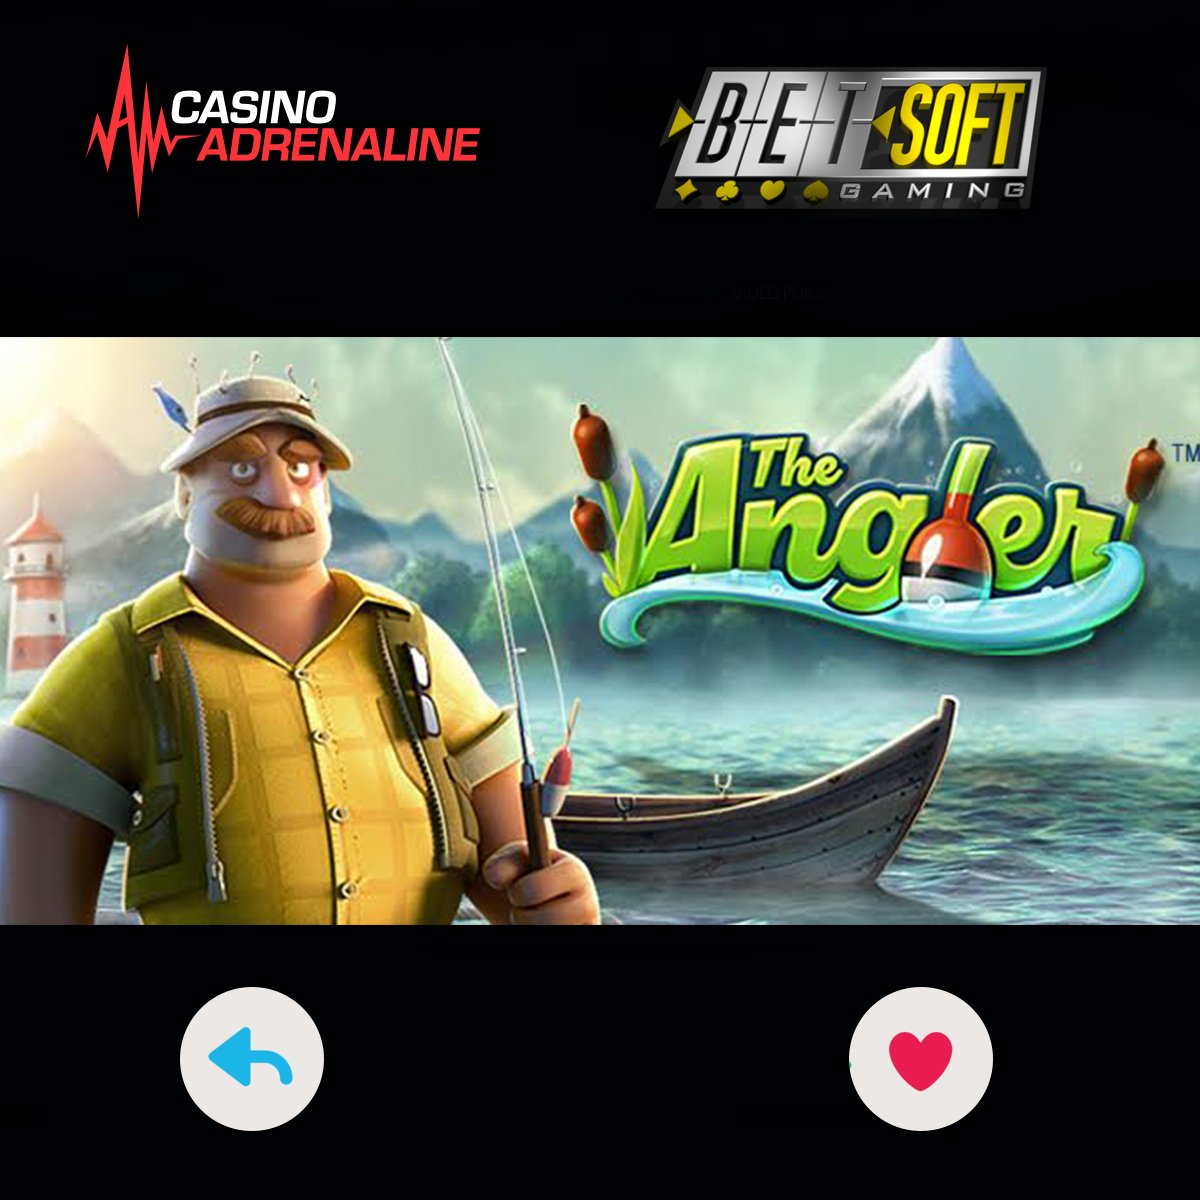 test Twitter Media - Ladies and gentlemen, we present to you The Angler video slot: https://t.co/O0P4a6F2Iy https://t.co/NkQZrbShmr